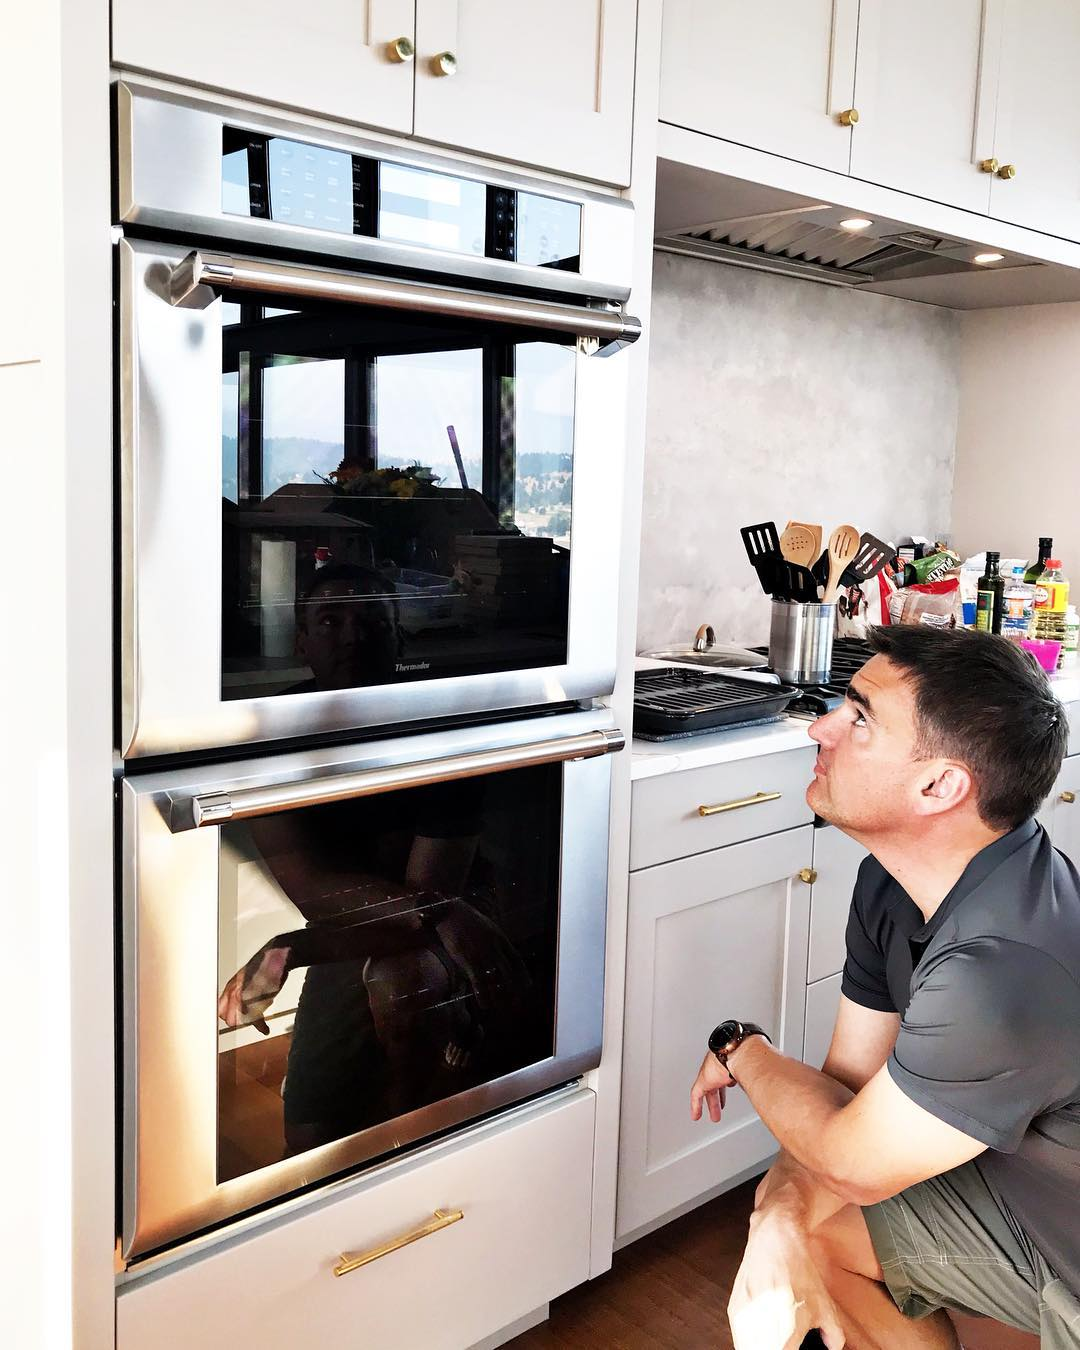 Builder of the year moment...yup, this is in fact a double oven!! whitefish custom home builder